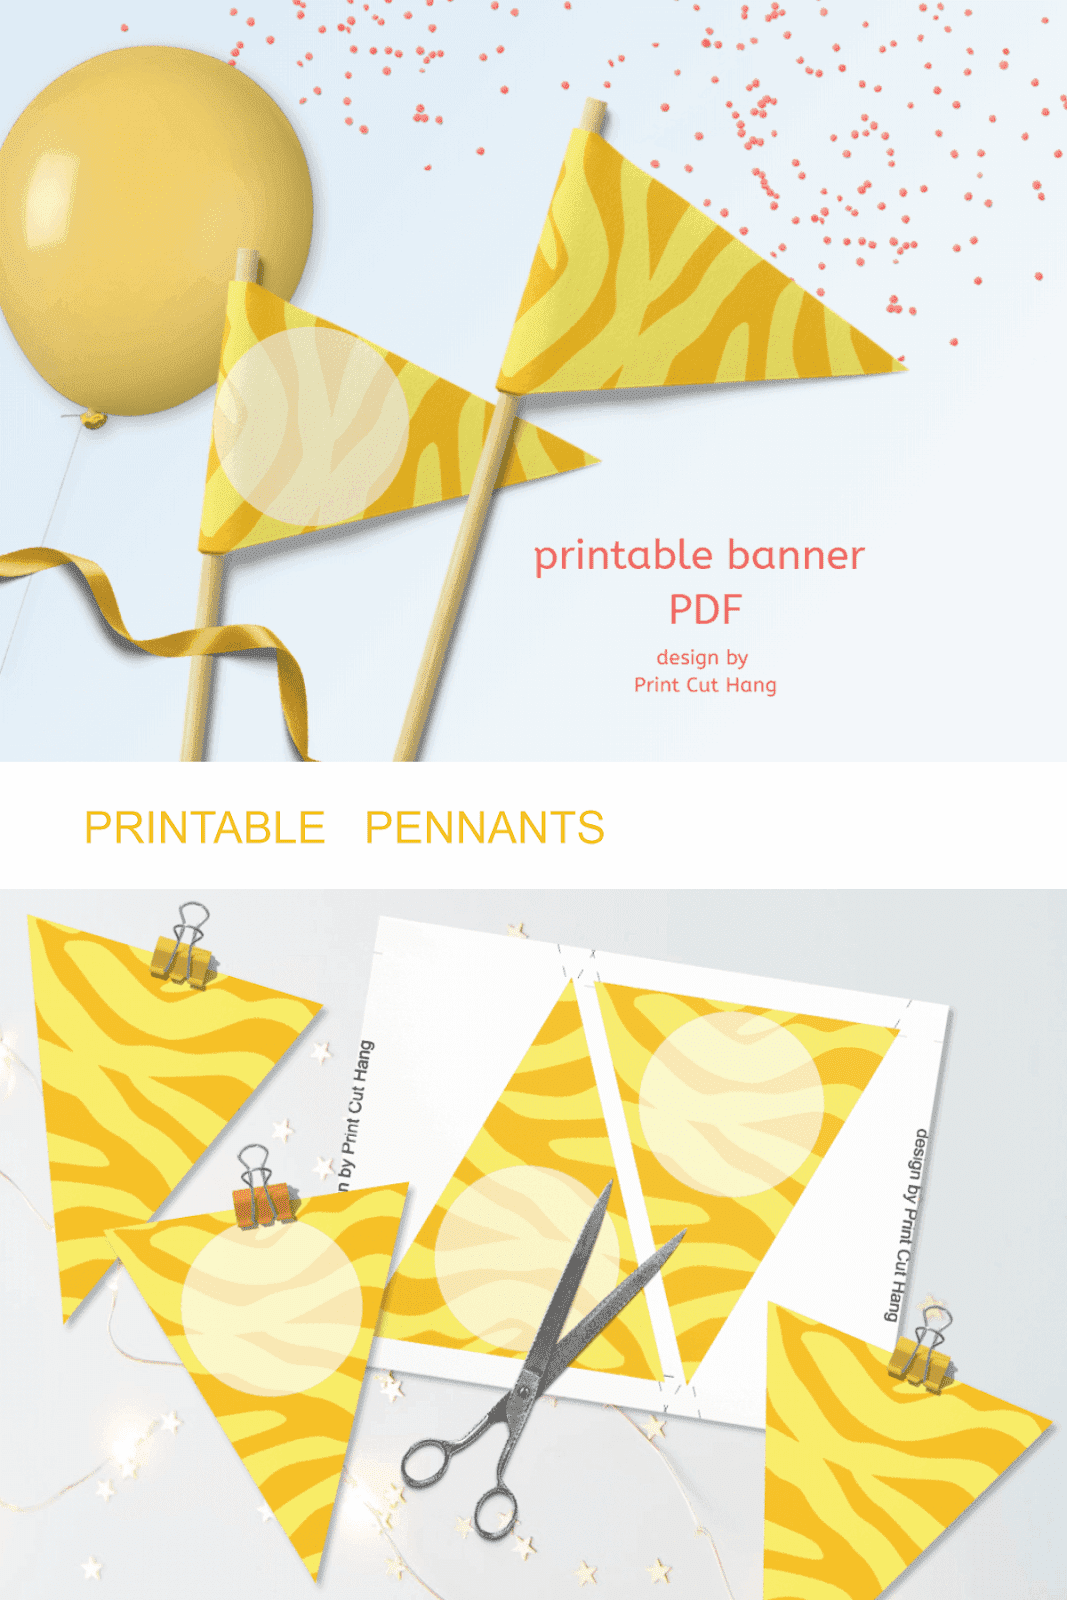 YELLOW ZEBRA PENNANTS